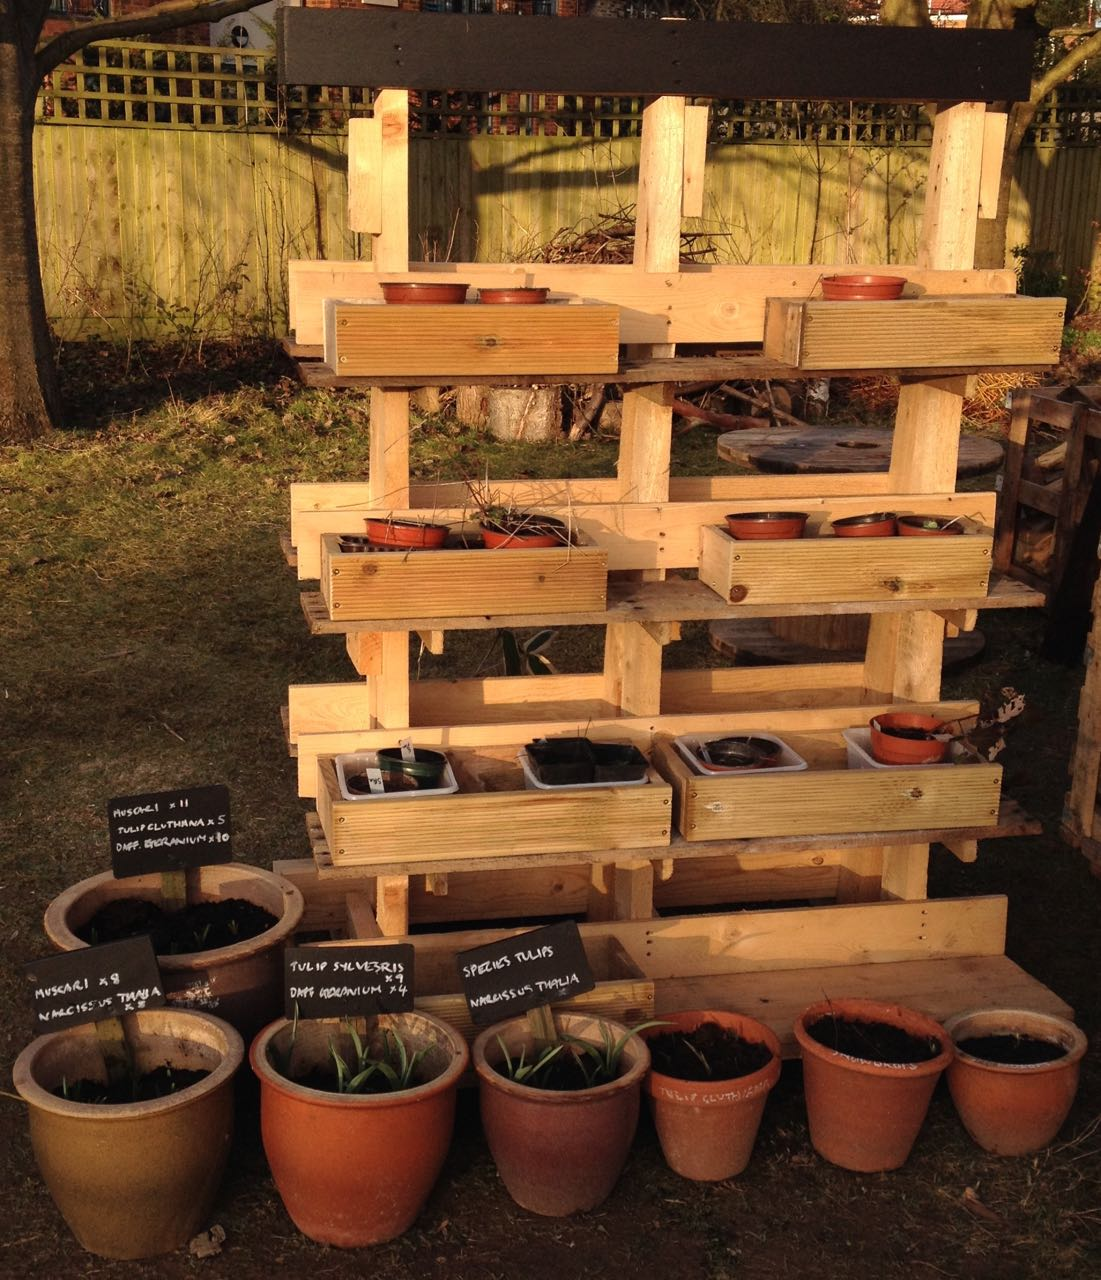 'Plant plaza', made from a pallet on which glass is delivered. Needs a sign!